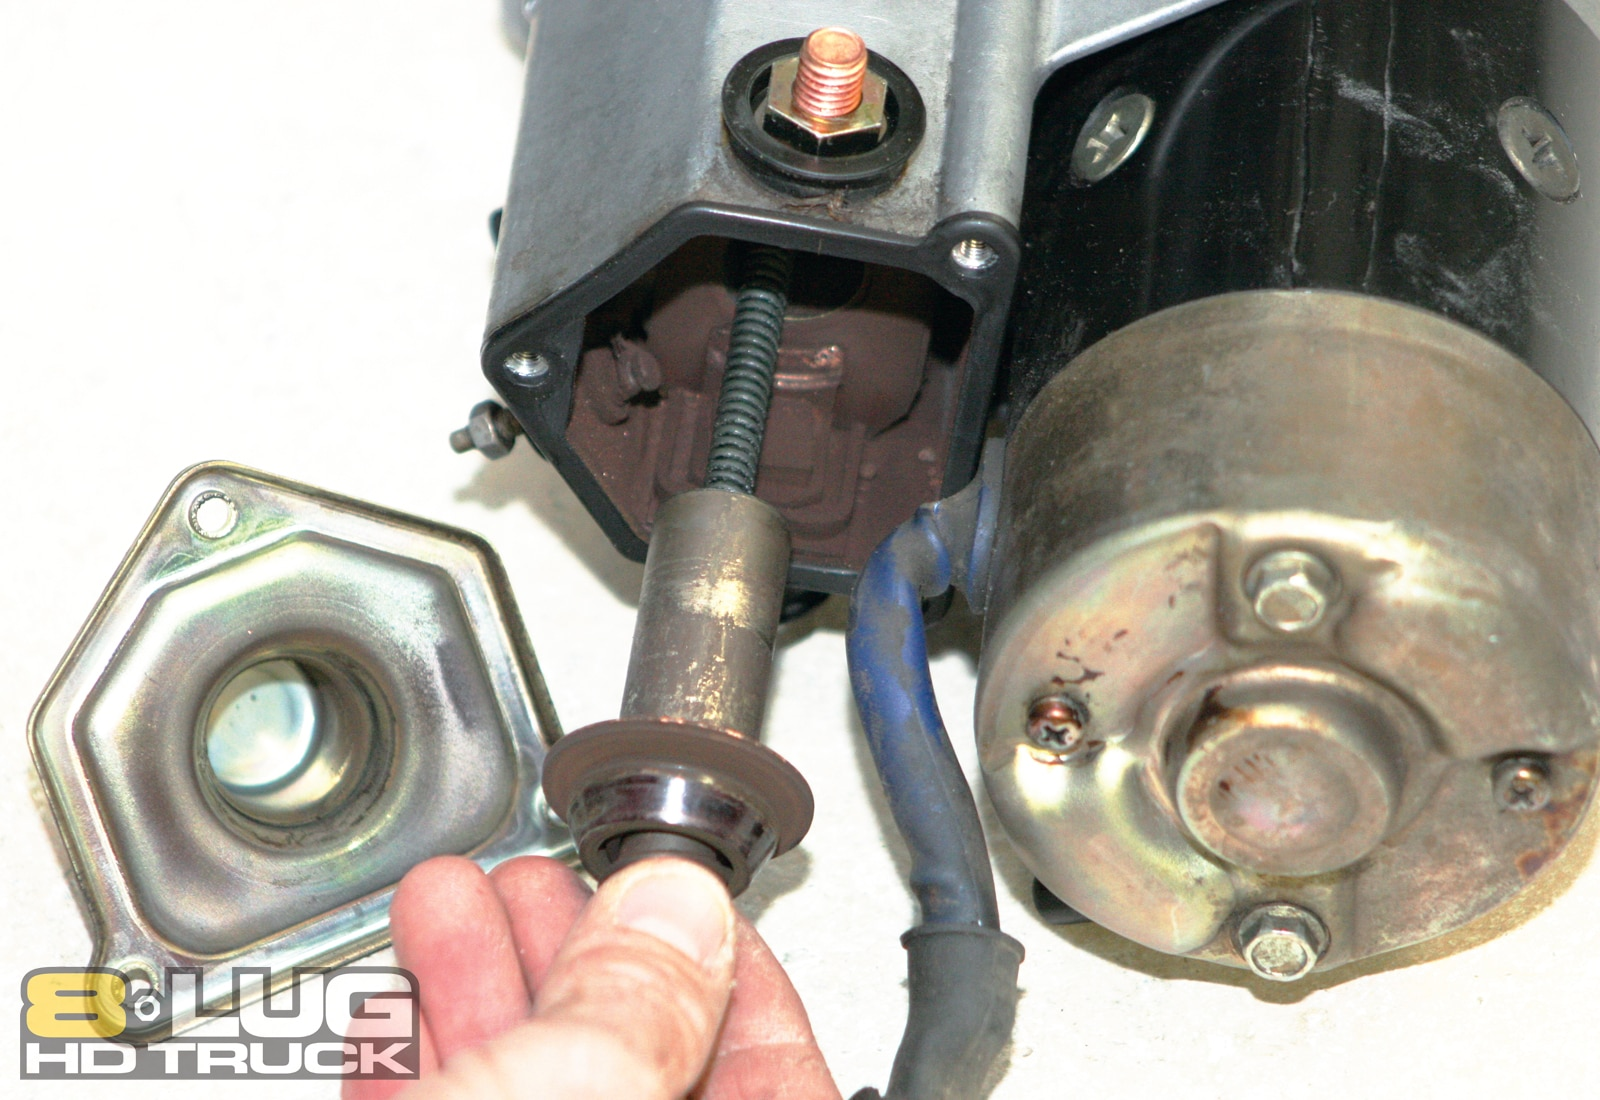 Starter Solenoid Repair - Copper Solenoid Contacts - 8-Lug